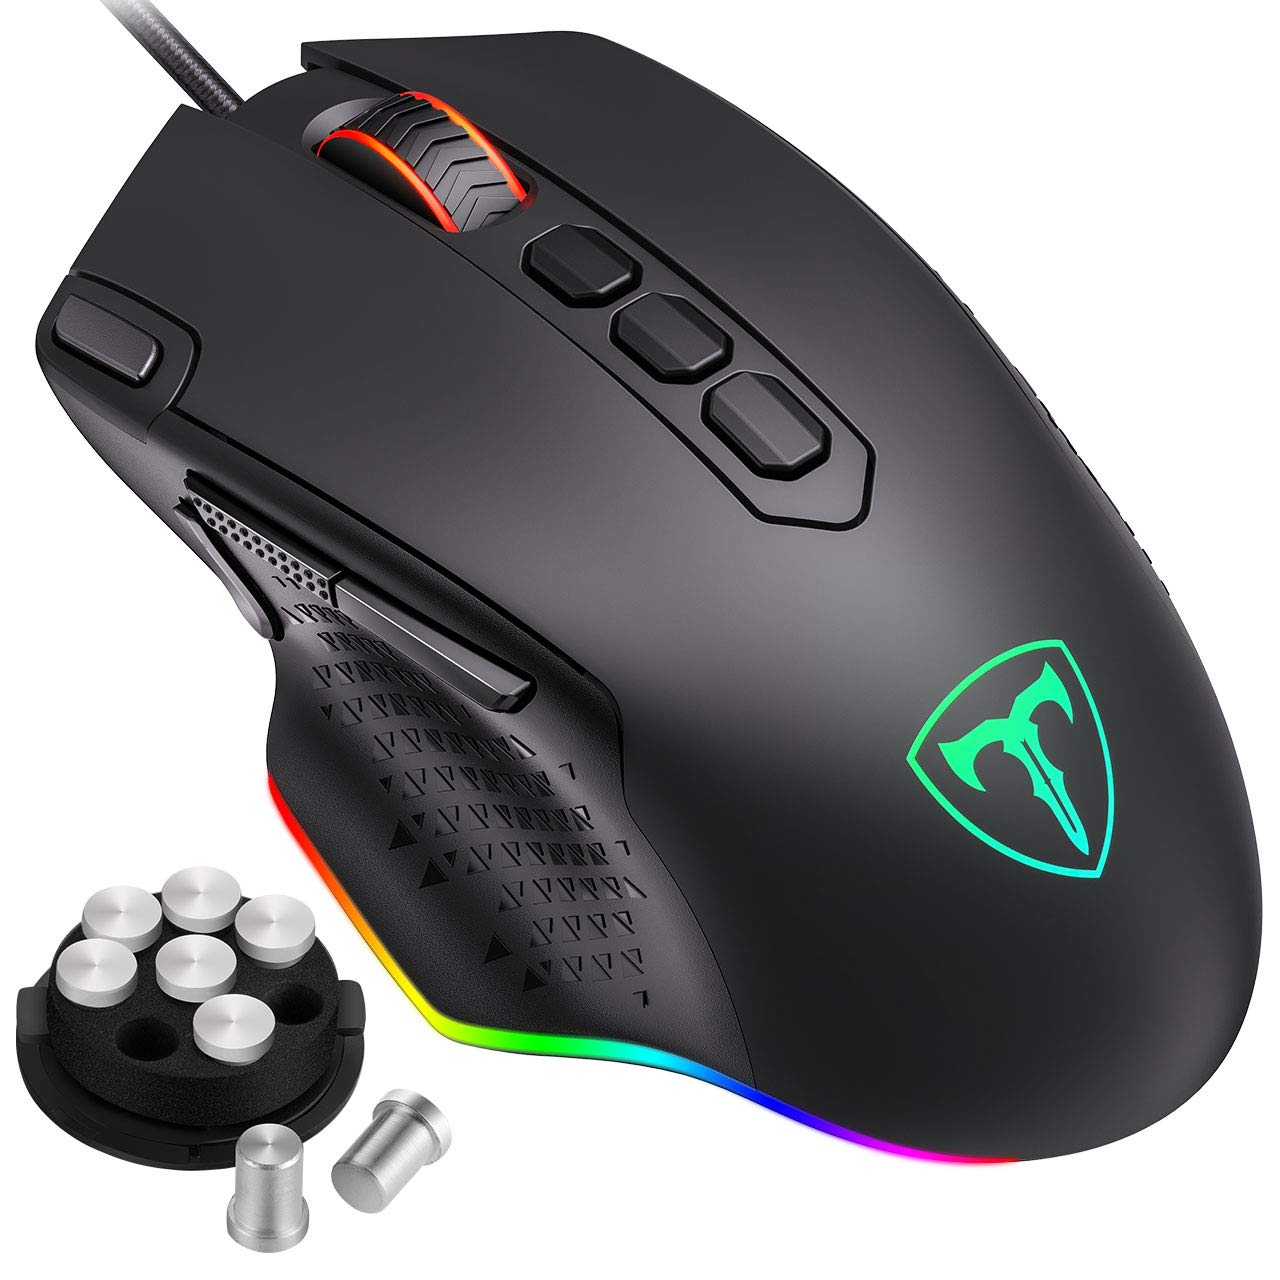 PICTEK Mouse Gaming RGB, Mouse da Gioco con 12000 DPI